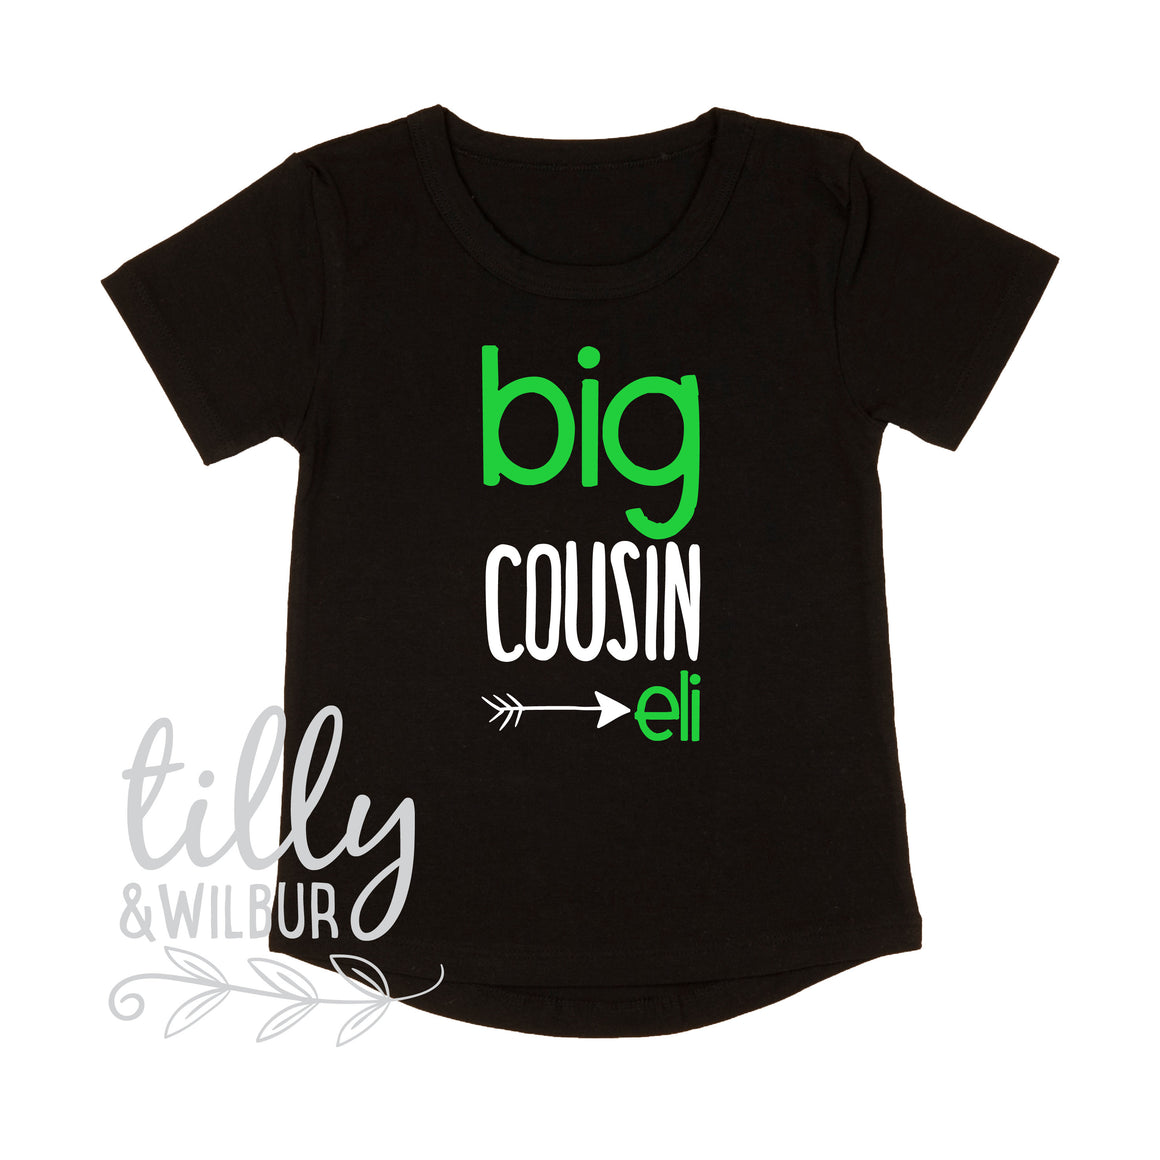 Personalised Big Cousin T-Shirt For Boys, Big Cousin T-Shirt, Boys Cousin Gift, Pregnancy Announcement, Boys Clothing, I'm Going To Be A Big